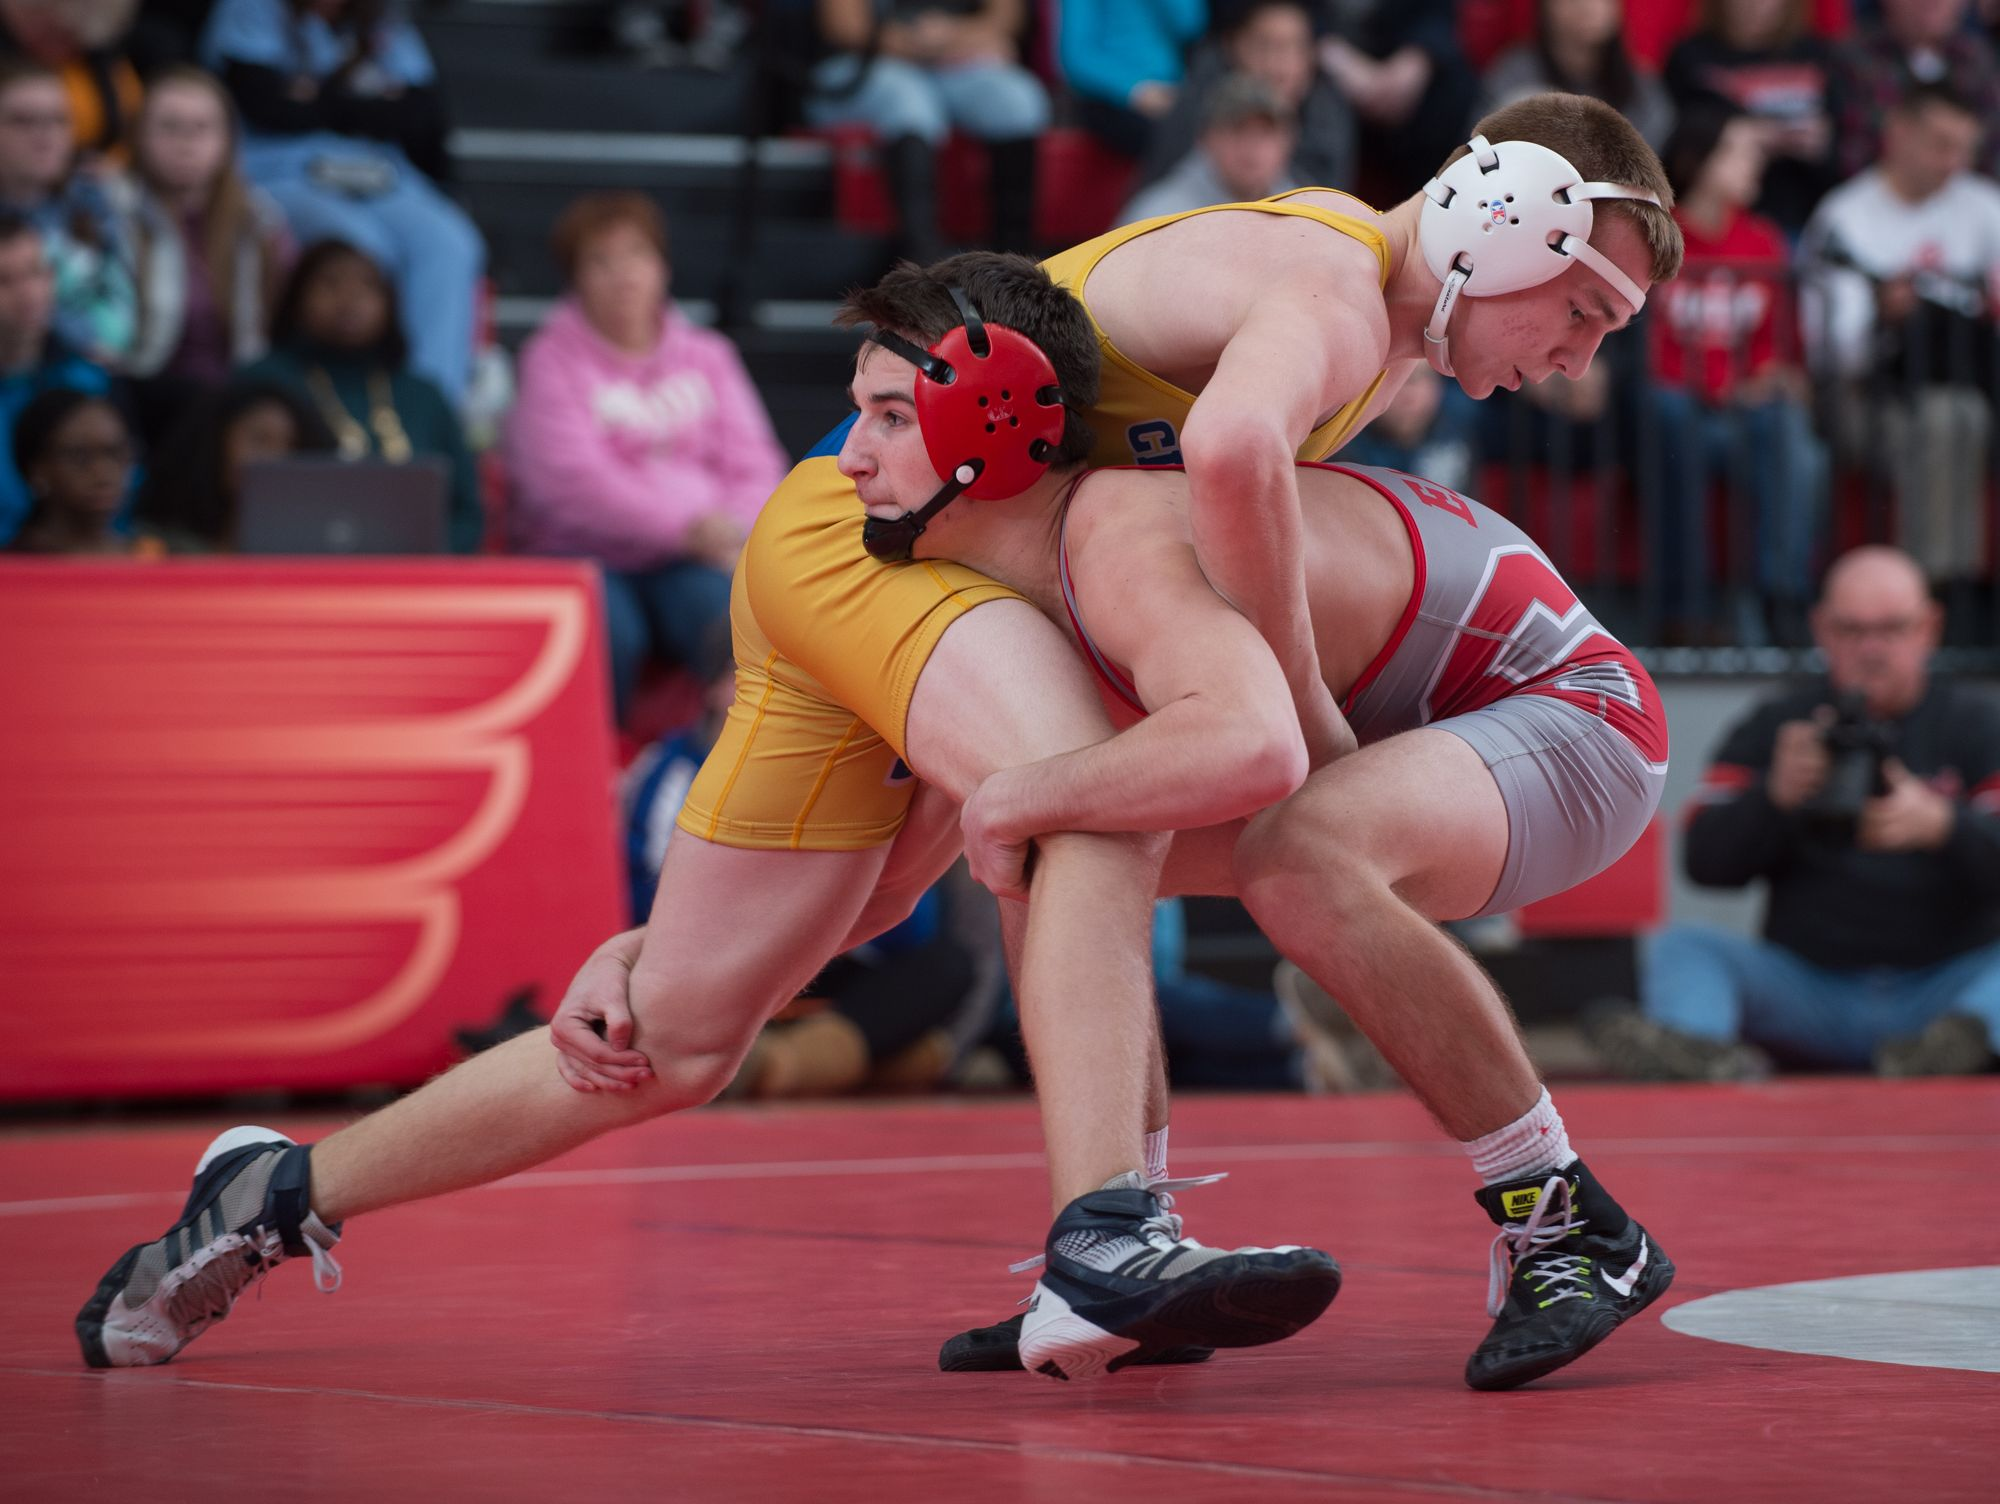 Sussex Central's Brandon Greenlee (top) and Smyrna's Greg Baum wrestle for position in the 132 pound match at Smyrna High School. Smyrna defeated Sussex Central 39-27.